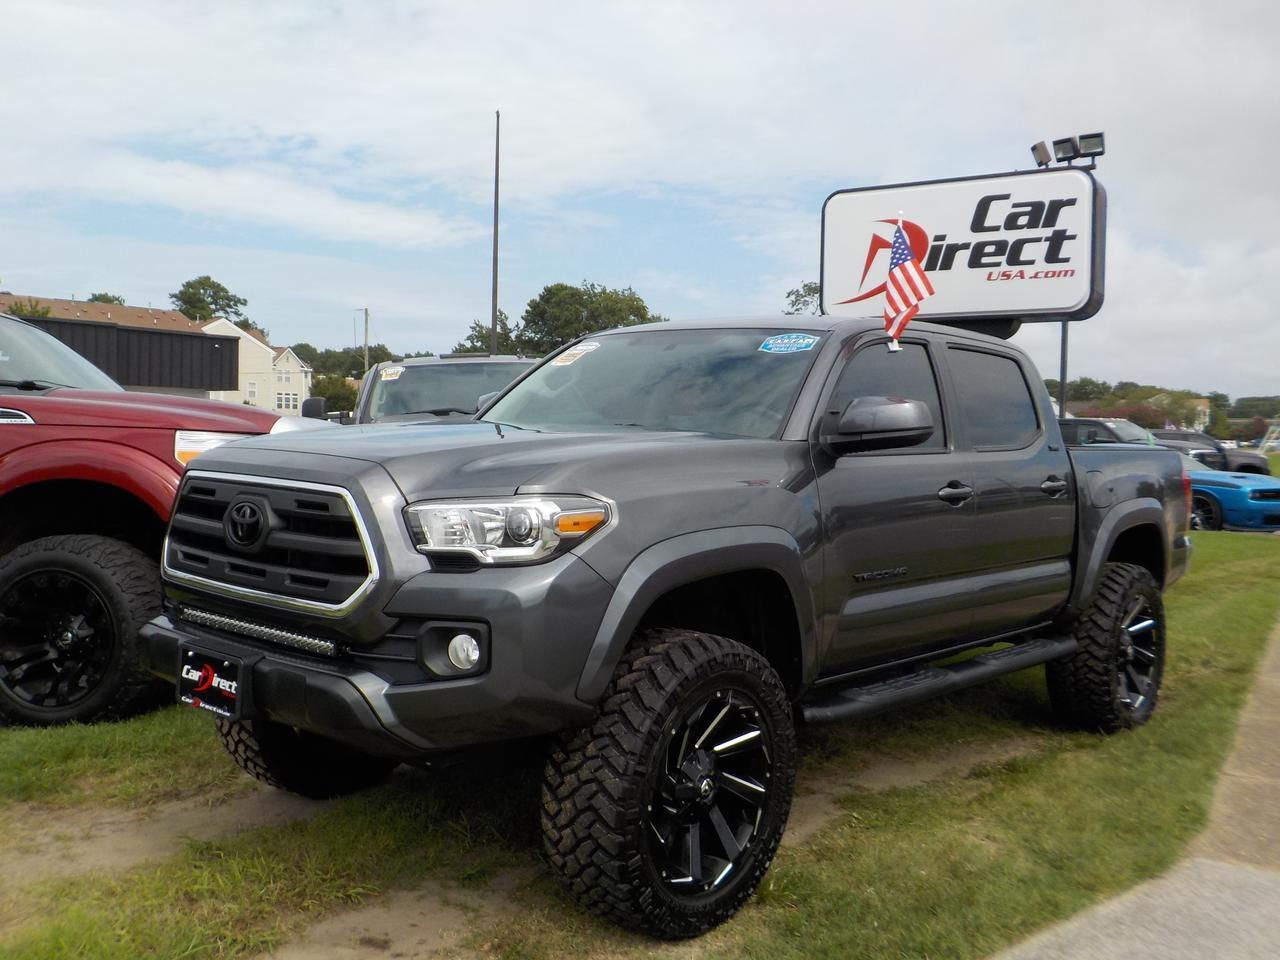 2017 TOYOTA TACOMA SR5 DOUBLE CAB 4X4, LIFTED, BACKUP CAM, SIRIUS RADIO, AUX/USB PORT, BLUETOOTH, LOW MILES! Virginia Beach VA